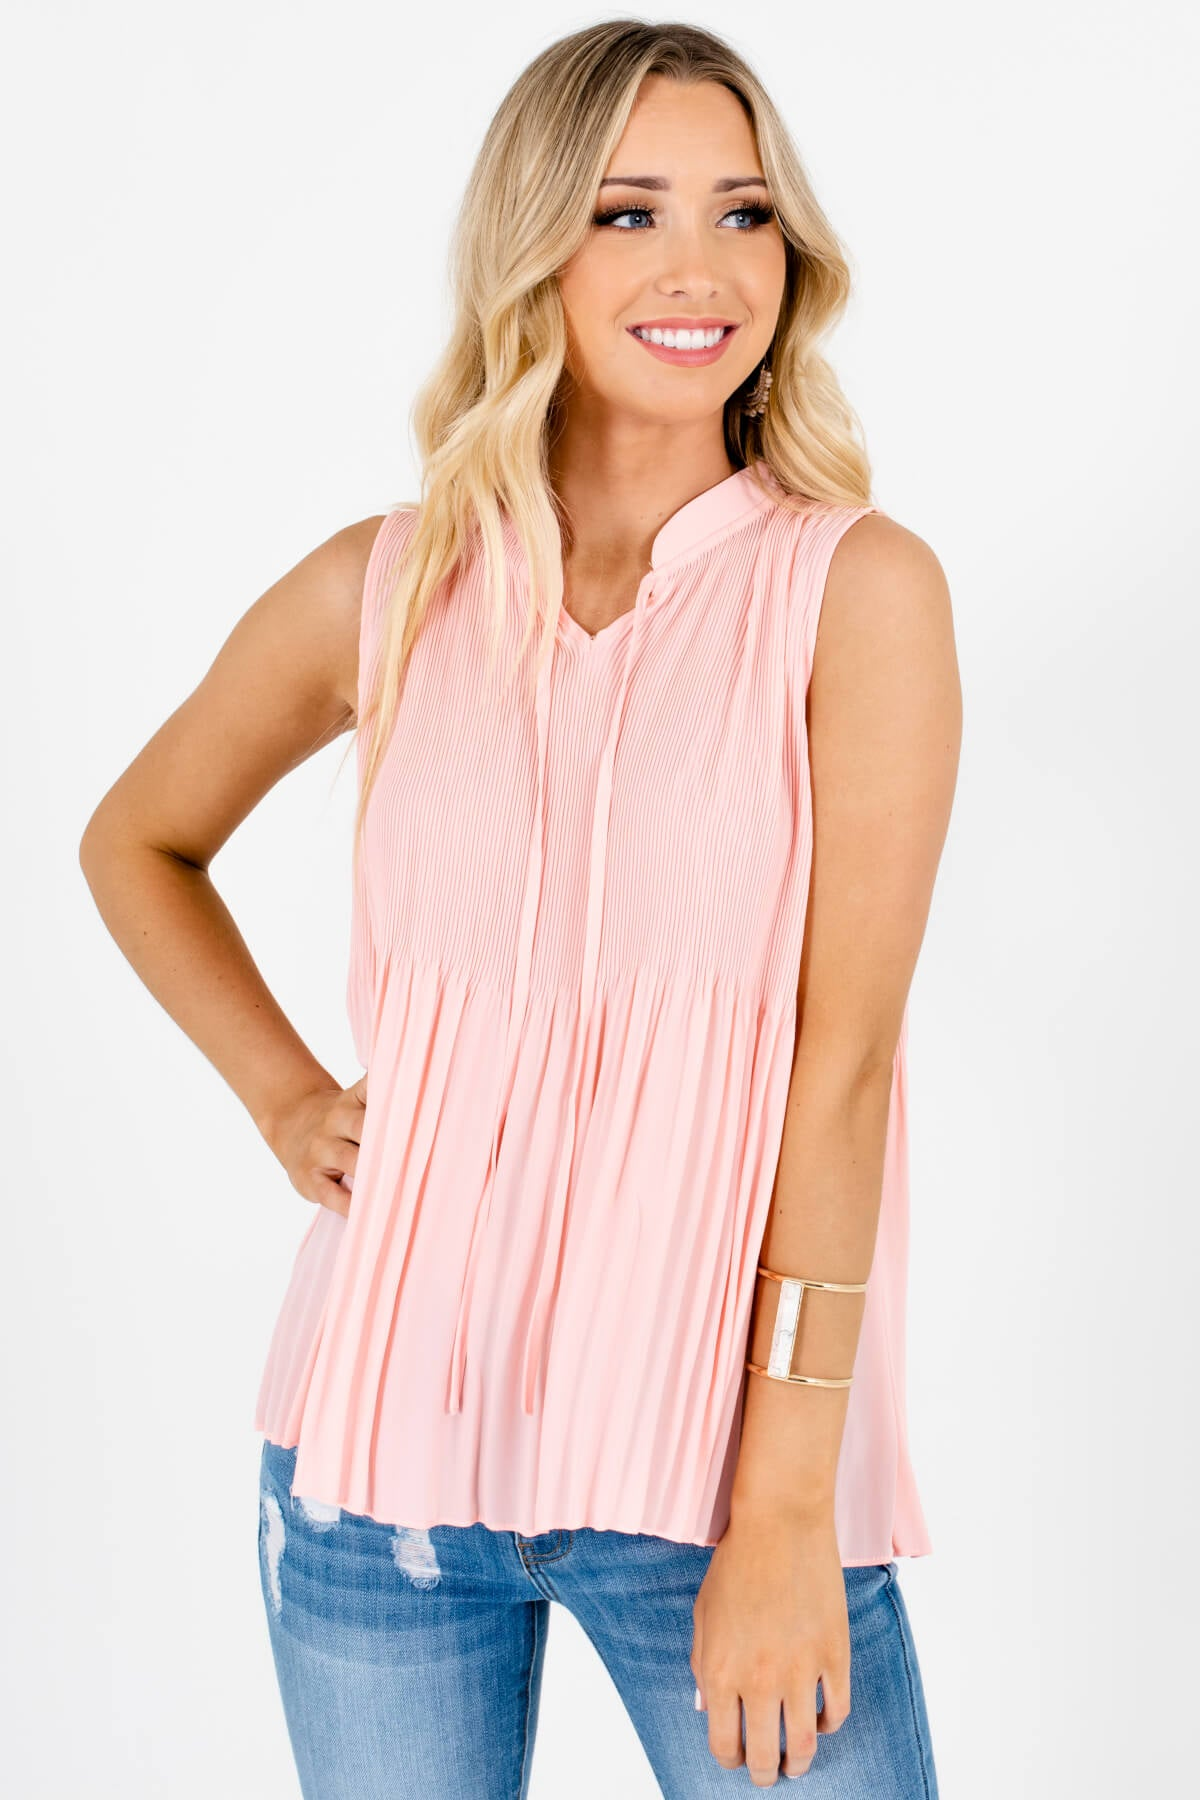 Pink Pleated Tank Tops with Self-Tie Neckline Affordable Online Boutique